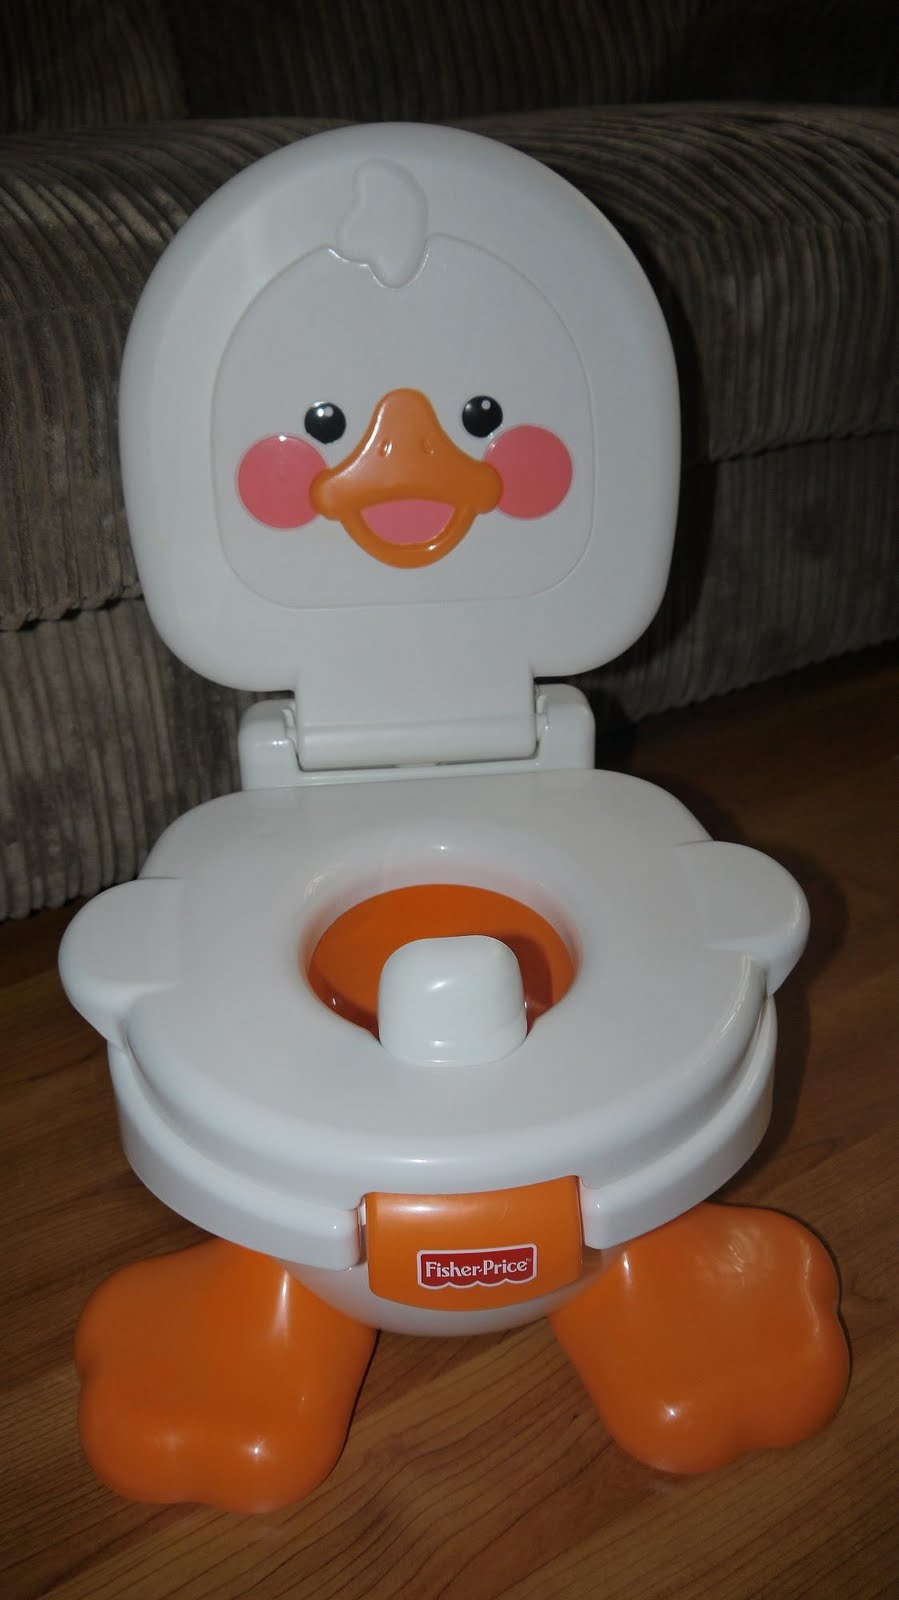 Fisher Price Duck Potty Chair Small Camp Inside The Wendy House Ducky Fun 3 In 1 For Comes With A Removable Easy Clean Bucket And Splash Guard Toilet Seat Part Also Can Be Removed Used As Trainer On Big So